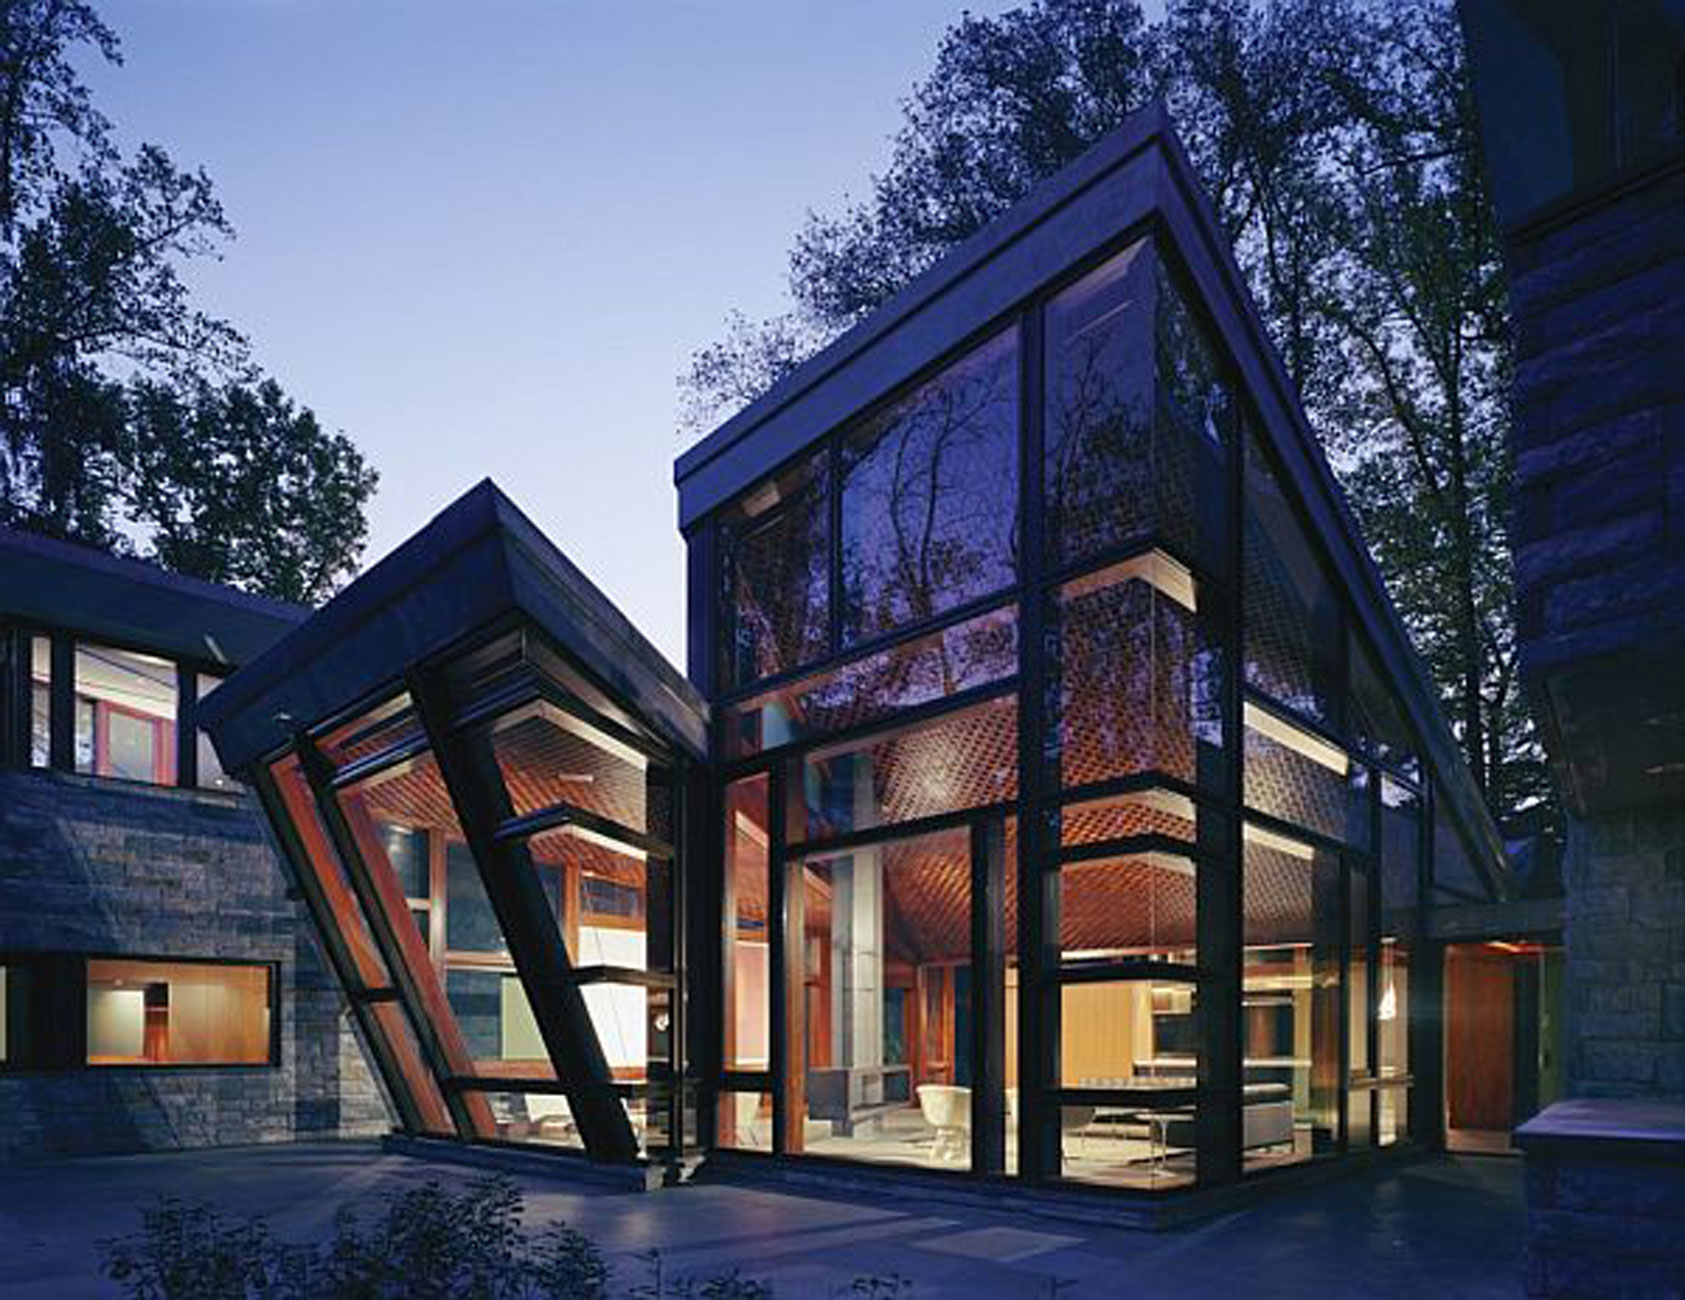 Sunday evening art gallery blog glass houses humoring for Design architecture house